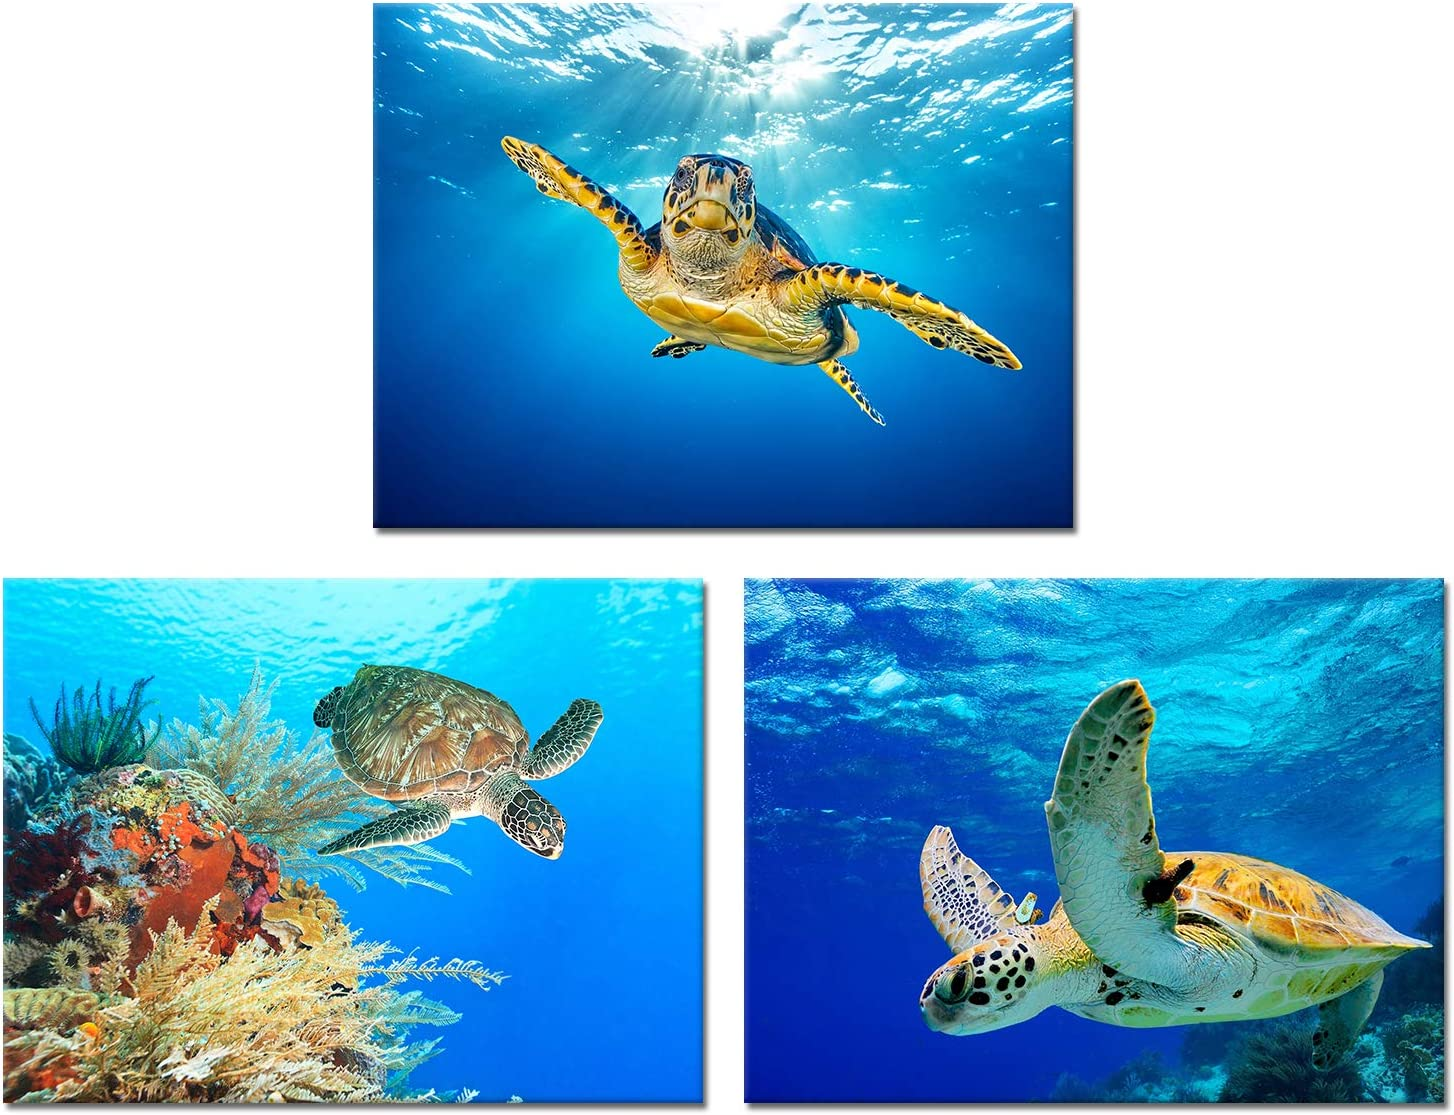 Visual Art Decor Turtles Picture Canvas Prints Underwater World Sea Life Decoration Wall Artwork Gallery Wrapped Ready to Hang for Coastal Sea Theme Room